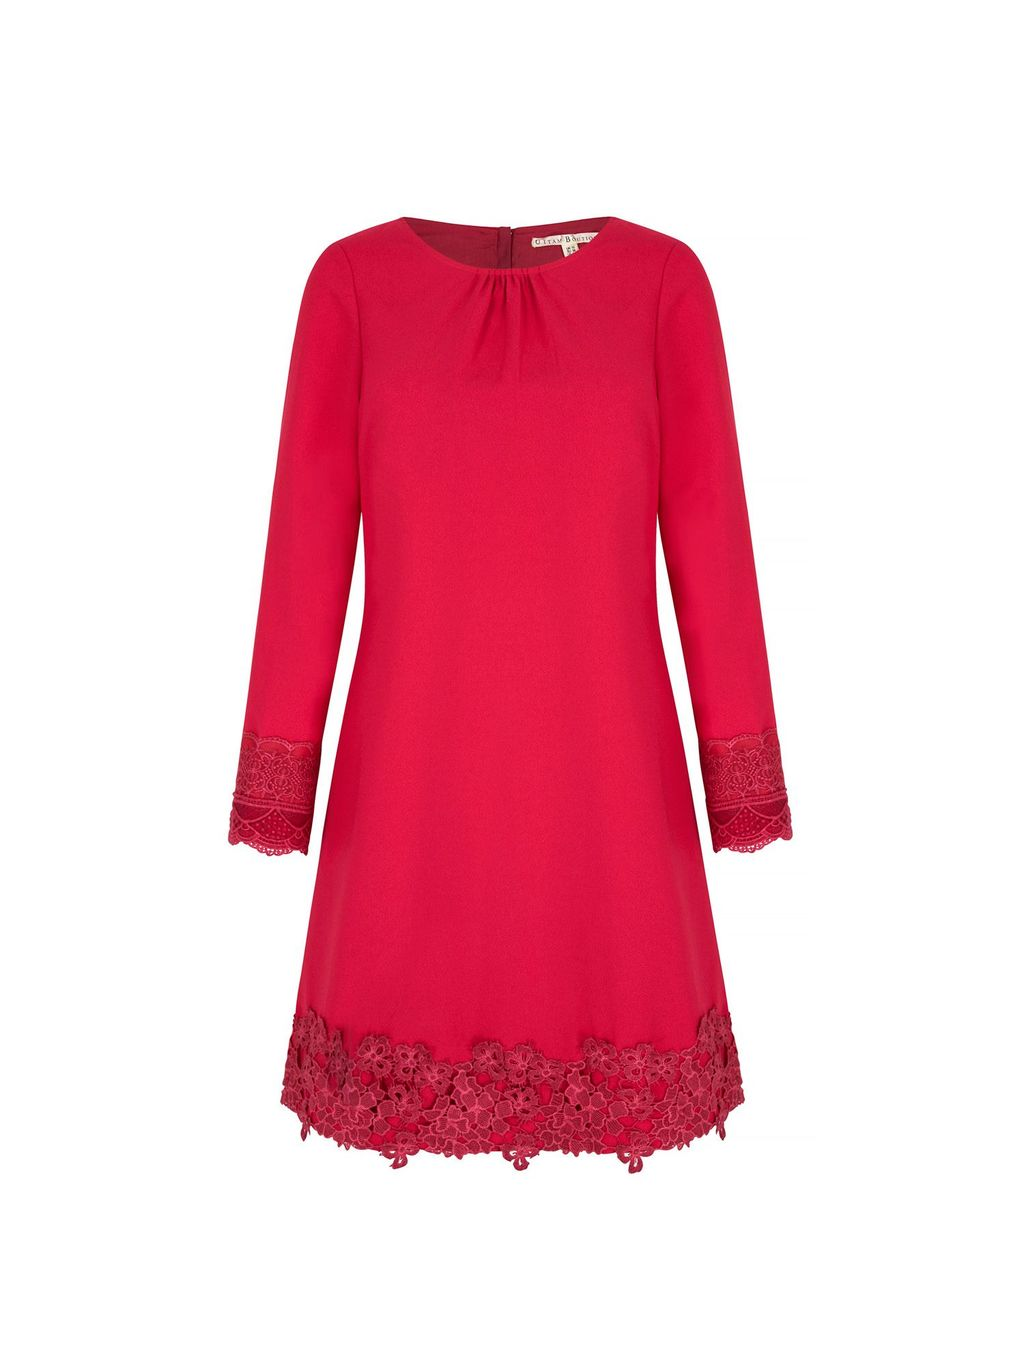 Long Sleeve Lace Shift Dress, Fuchsia - style: shift; length: mid thigh; pattern: plain; bust detail: subtle bust detail; predominant colour: hot pink; fit: soft a-line; fibres: polyester/polyamide - 100%; occasions: occasion; neckline: crew; sleeve length: long sleeve; sleeve style: standard; texture group: crepes; pattern type: fabric; embellishment: lace; season: s/s 2016; wardrobe: event; embellishment location: hem, sleeve/cuff